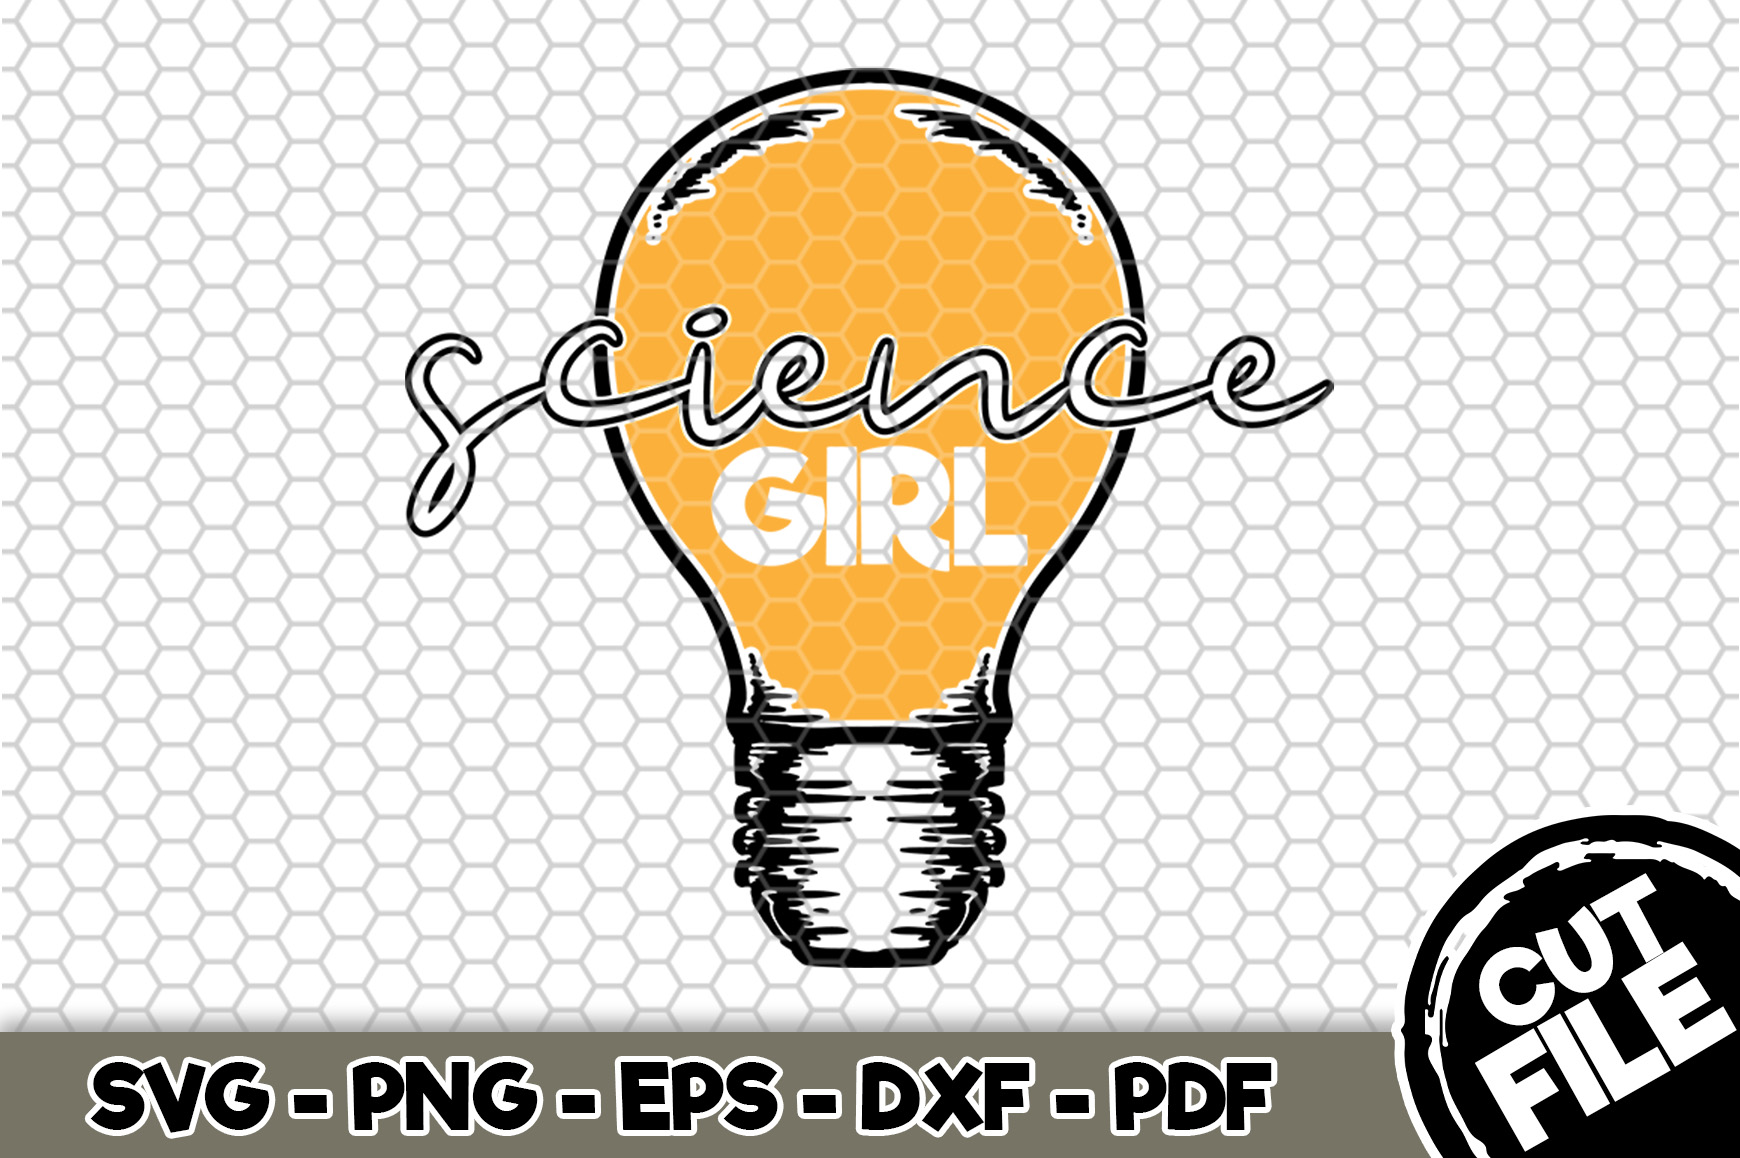 Download Free Science Girl Grafik Von Svgexpress Creative Fabrica for Cricut Explore, Silhouette and other cutting machines.